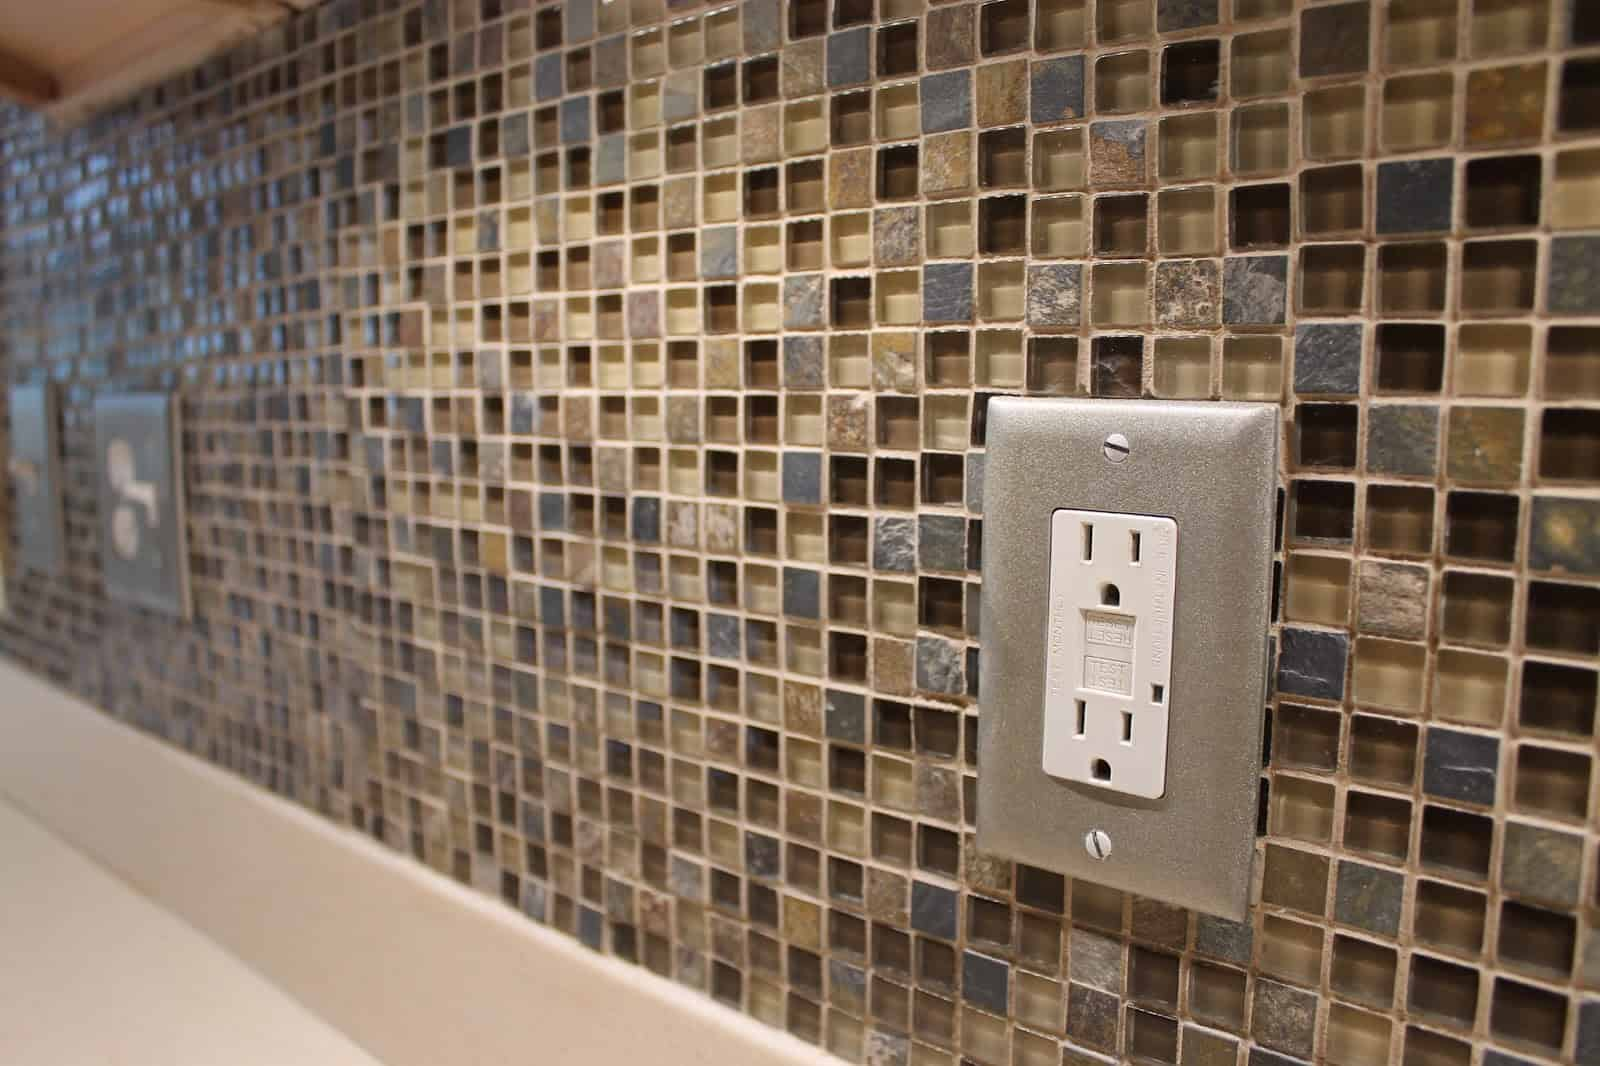 Switch Plate Covers For Tile Backsplash Bindu Bhatia